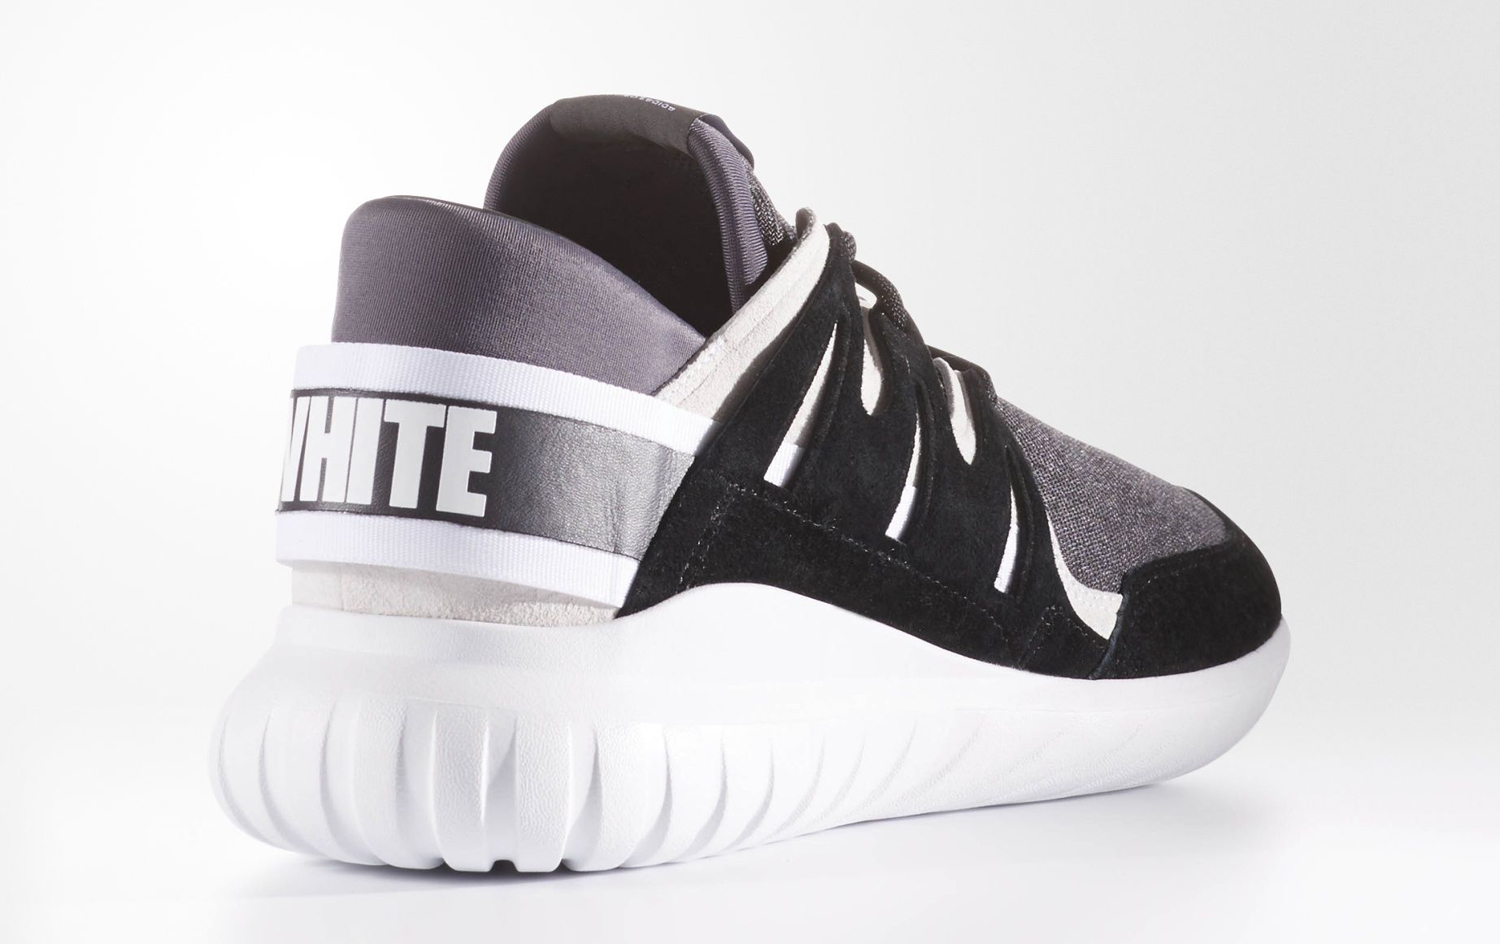 Adidas Tubular Nova X White Mountaineering